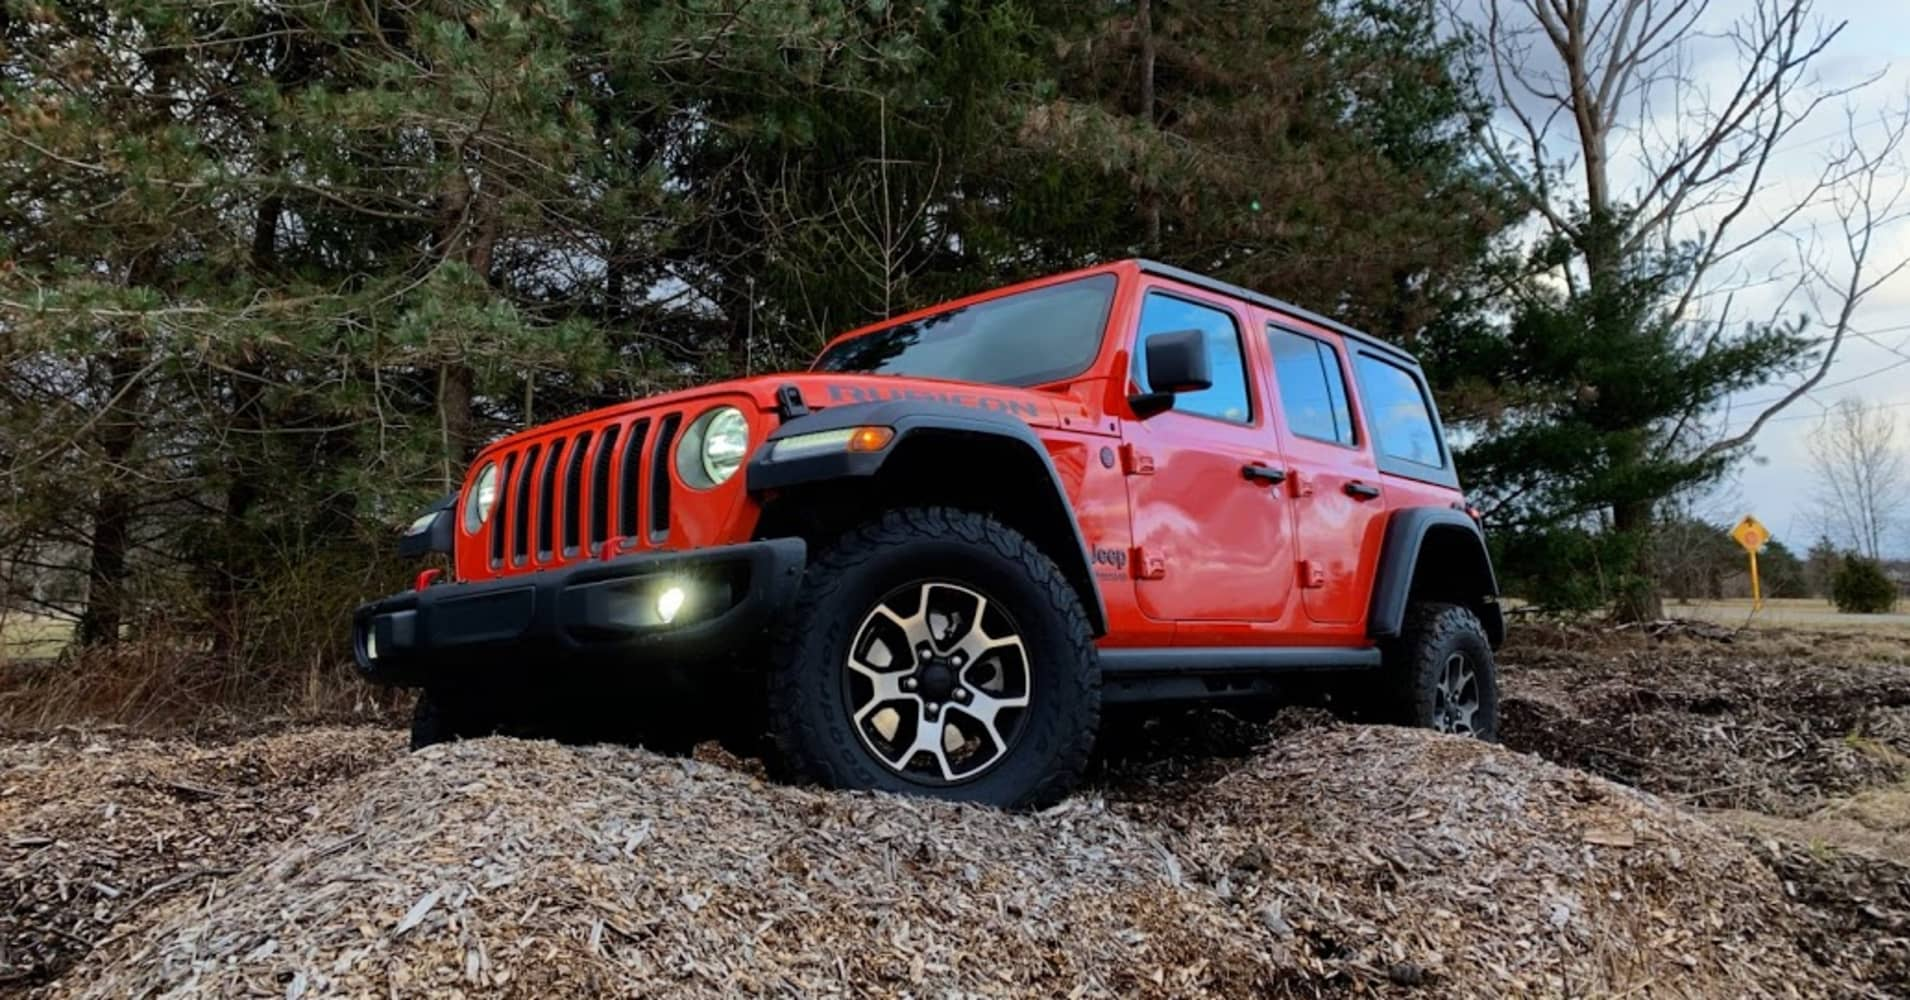 Review: The 2019 Jeep Wrangler Rubicon shines off-road